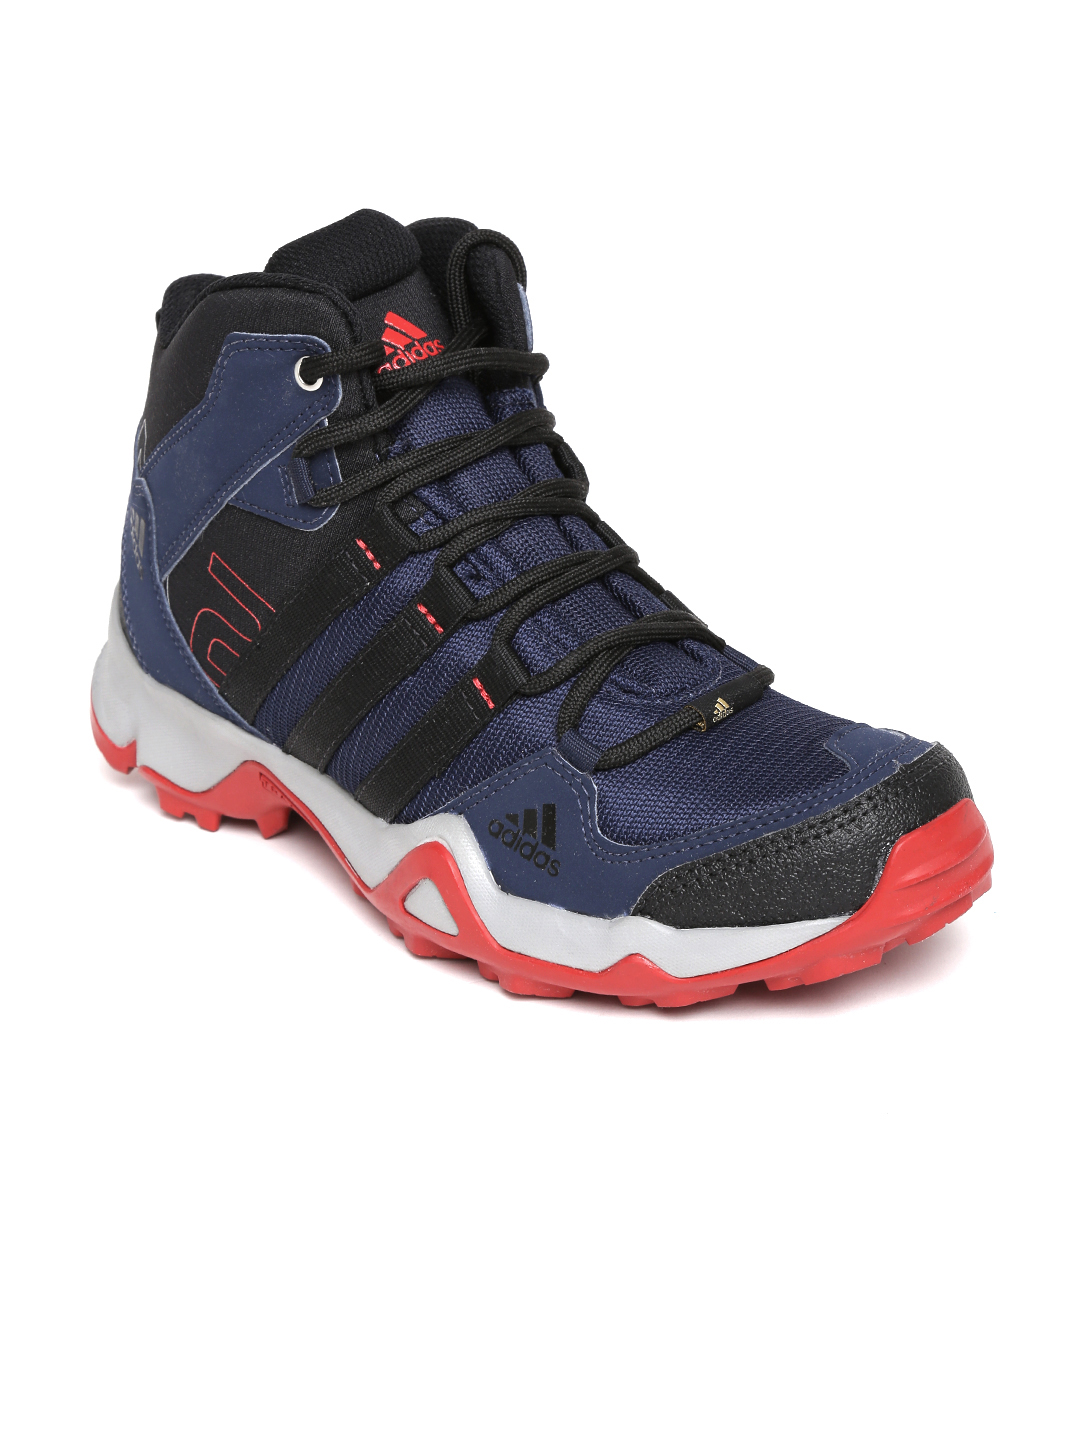 Myntra Adidas Men Navy U0026 Black AX2 Mid Outdoor Shoes 783756 | Buy Myntra Adidas Sports Shoes At ...